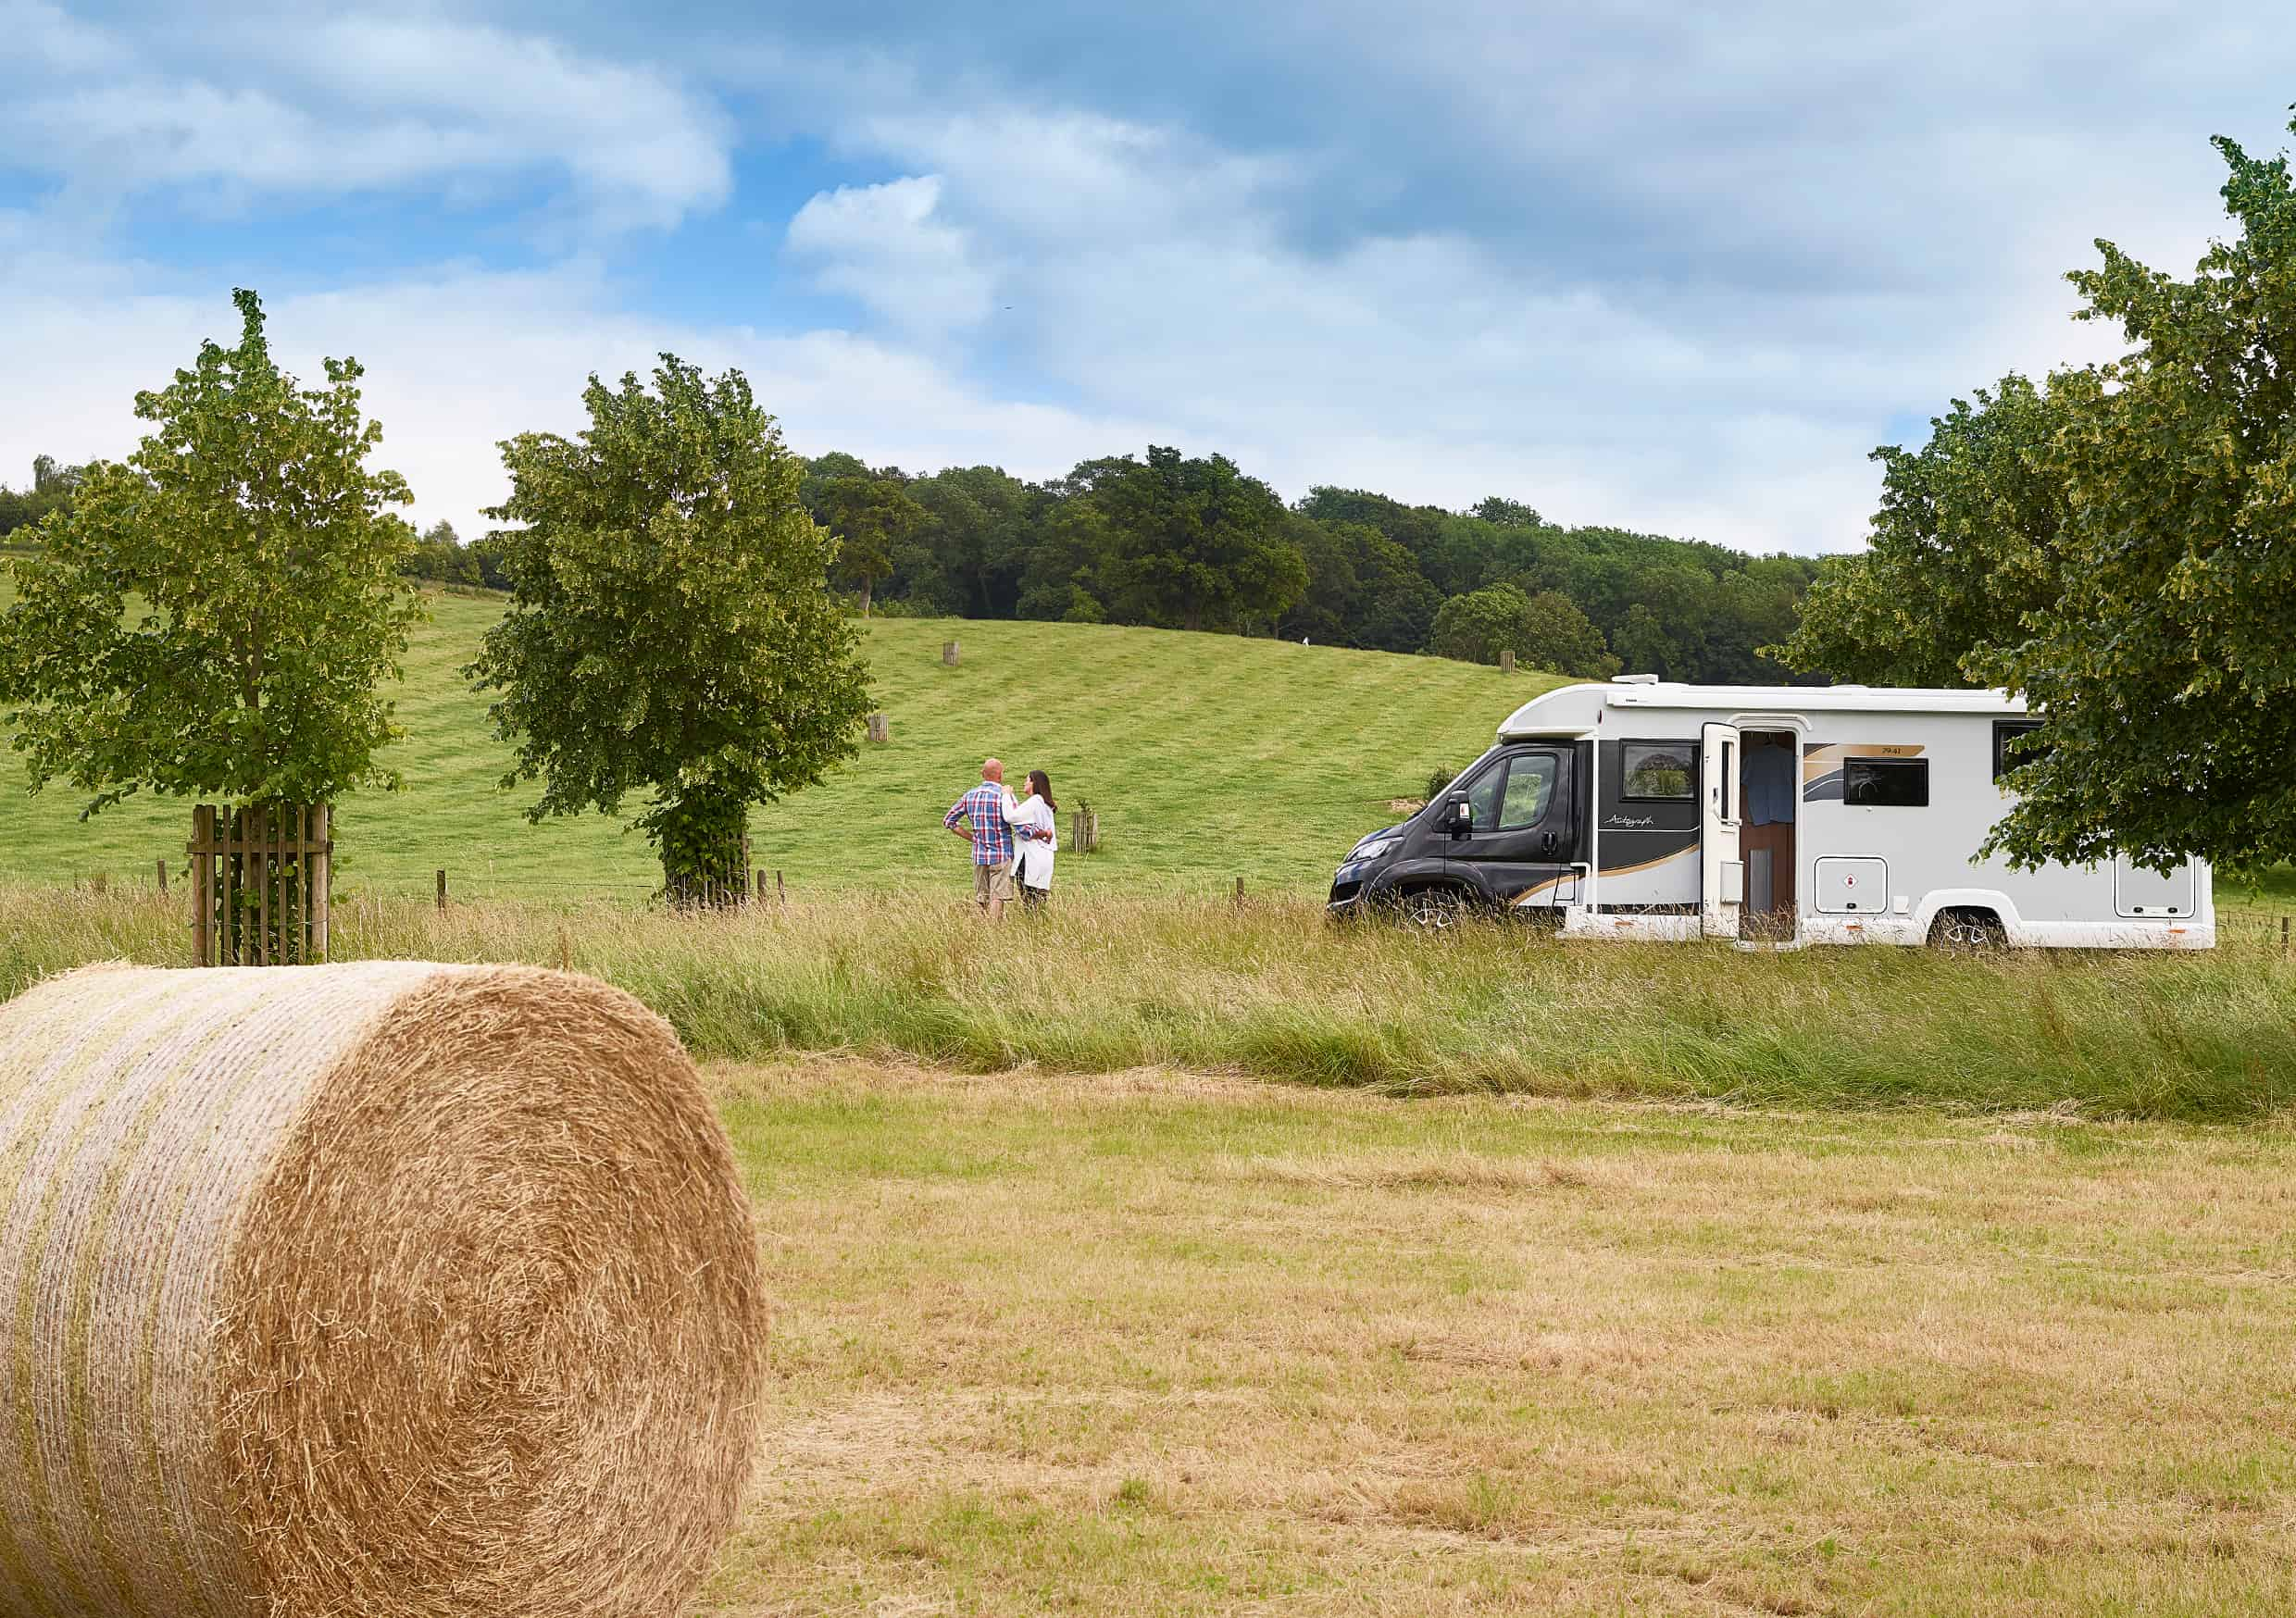 Why Campbells Caravans are good for Travelling with kids